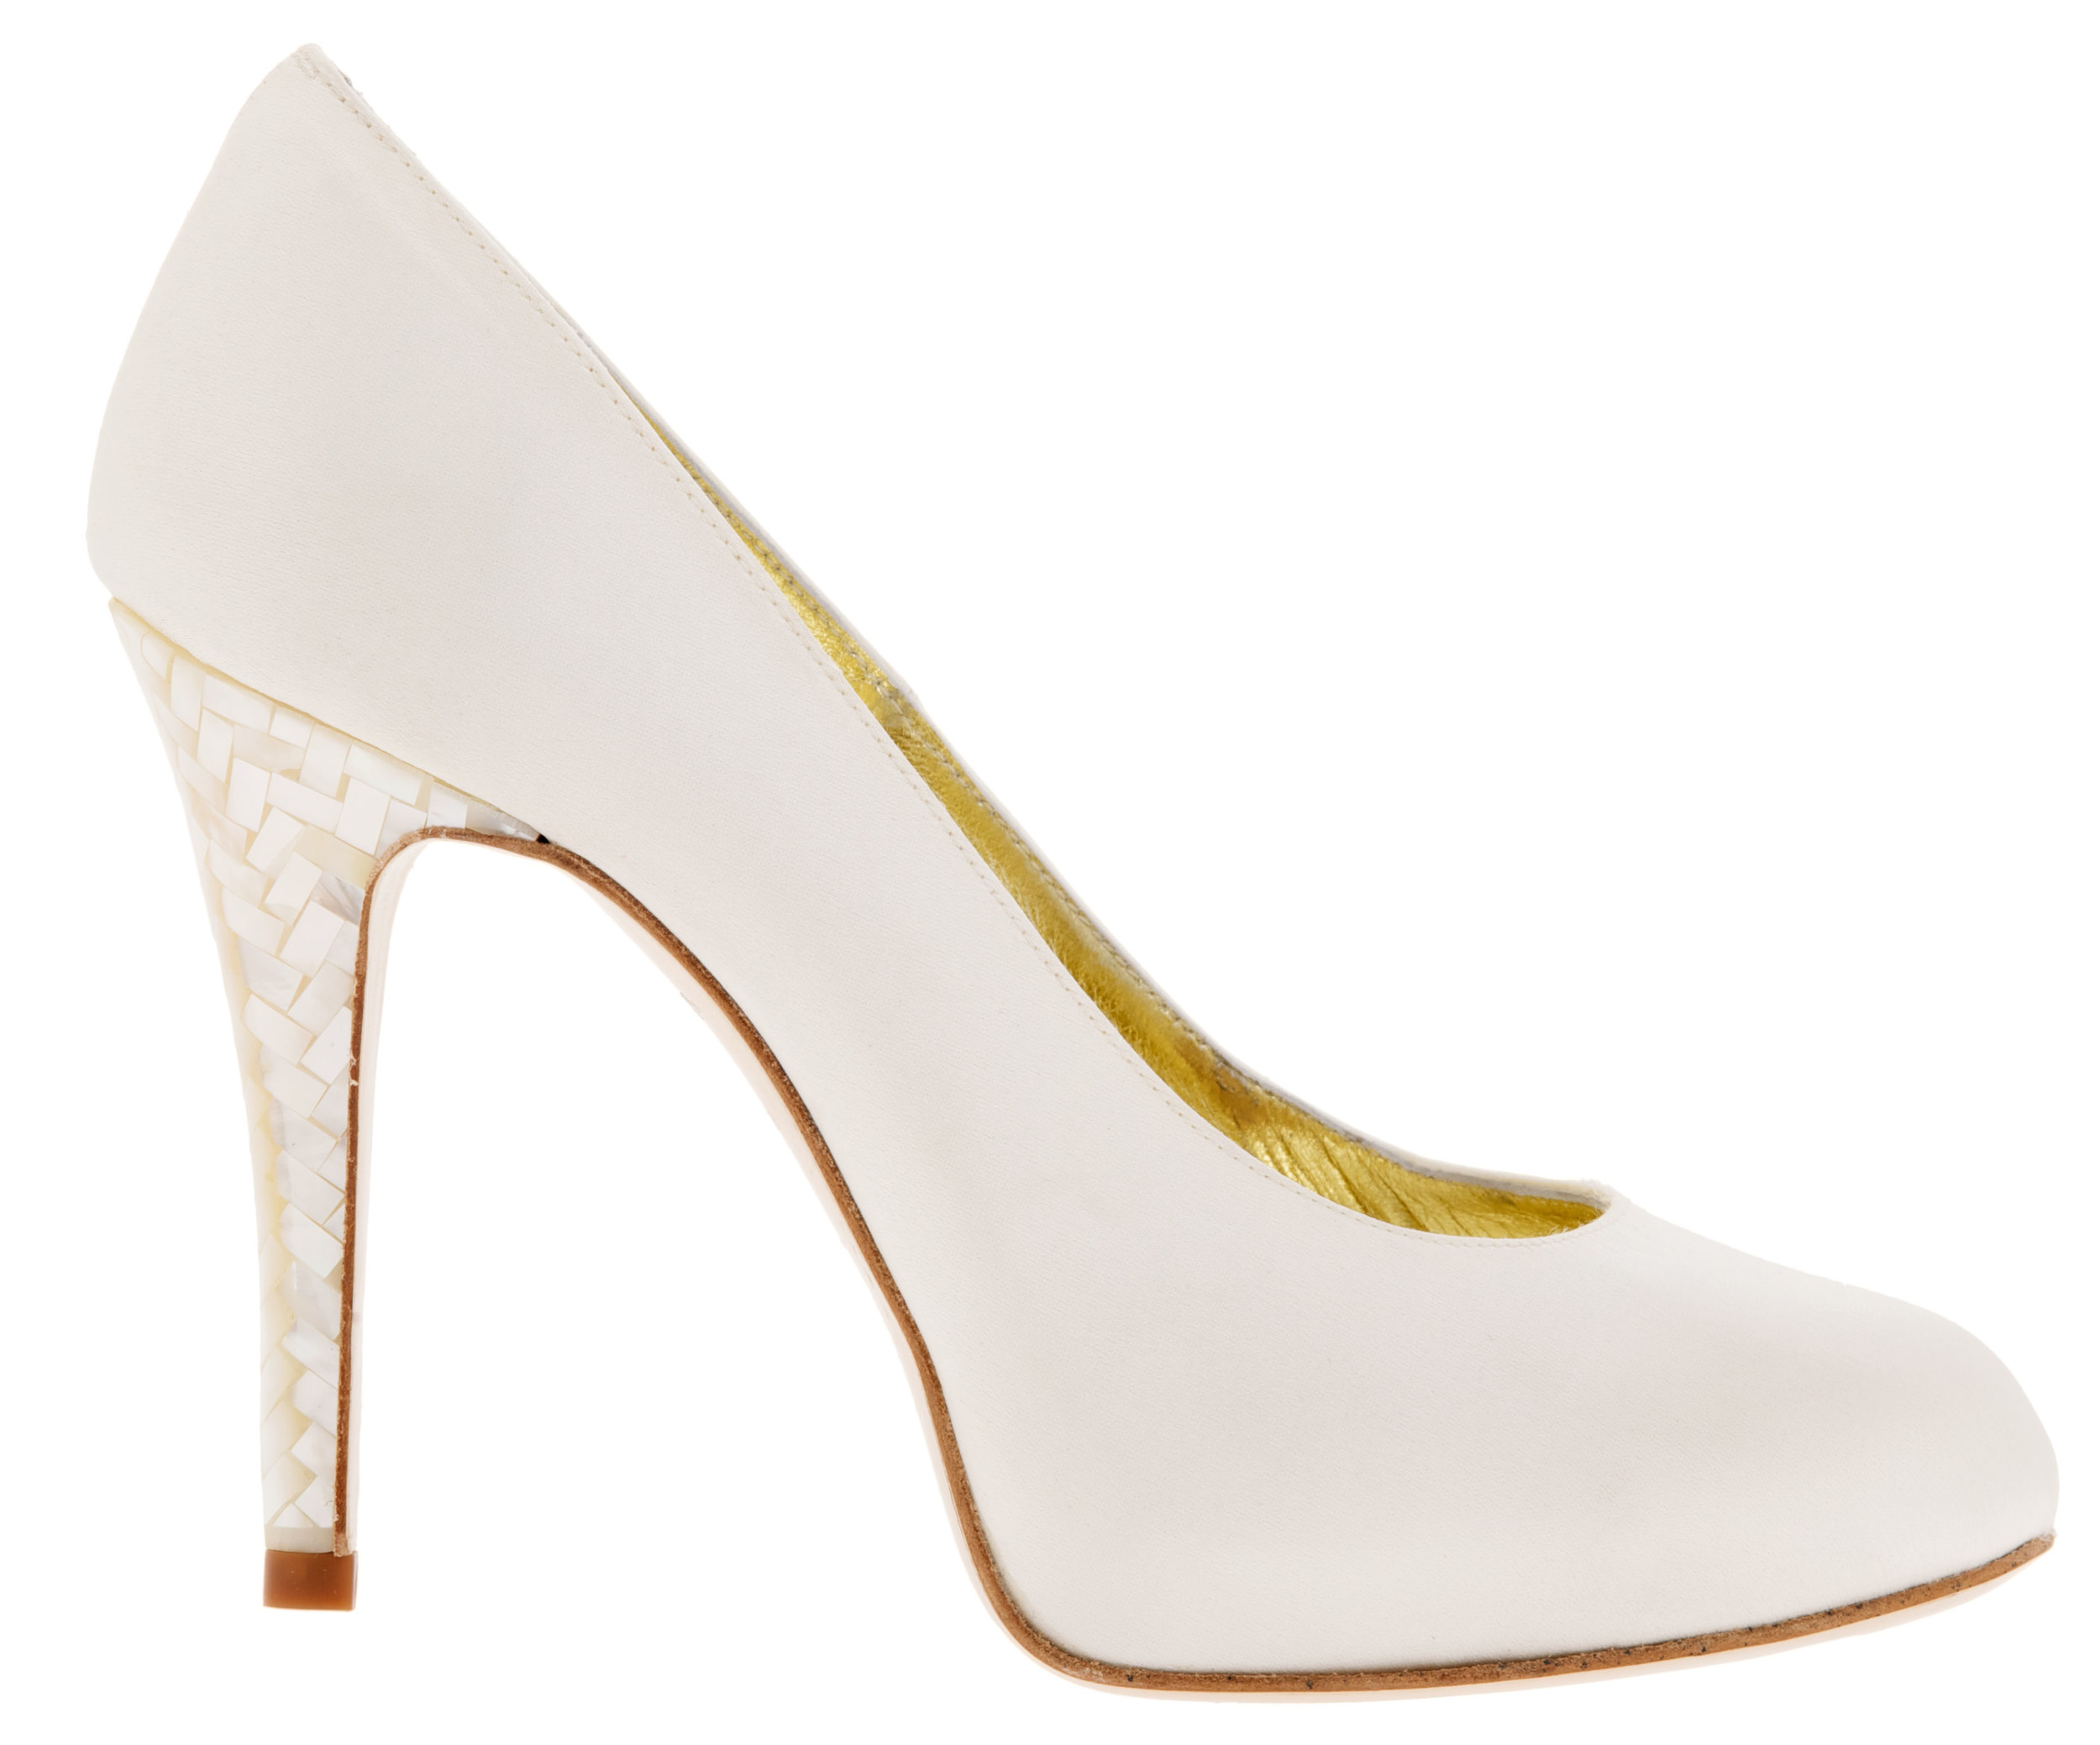 The Caira shoes, with Freya Rose's signature Mother of Pearl mosaic heel